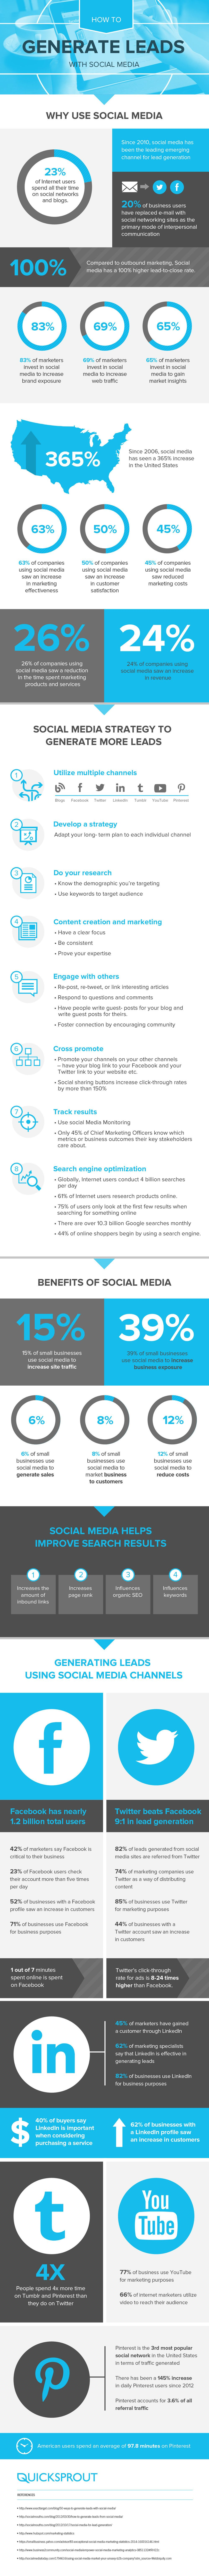 How to Generate Leads with Social Media [infographic] #SocialMedia #Sales #marketing